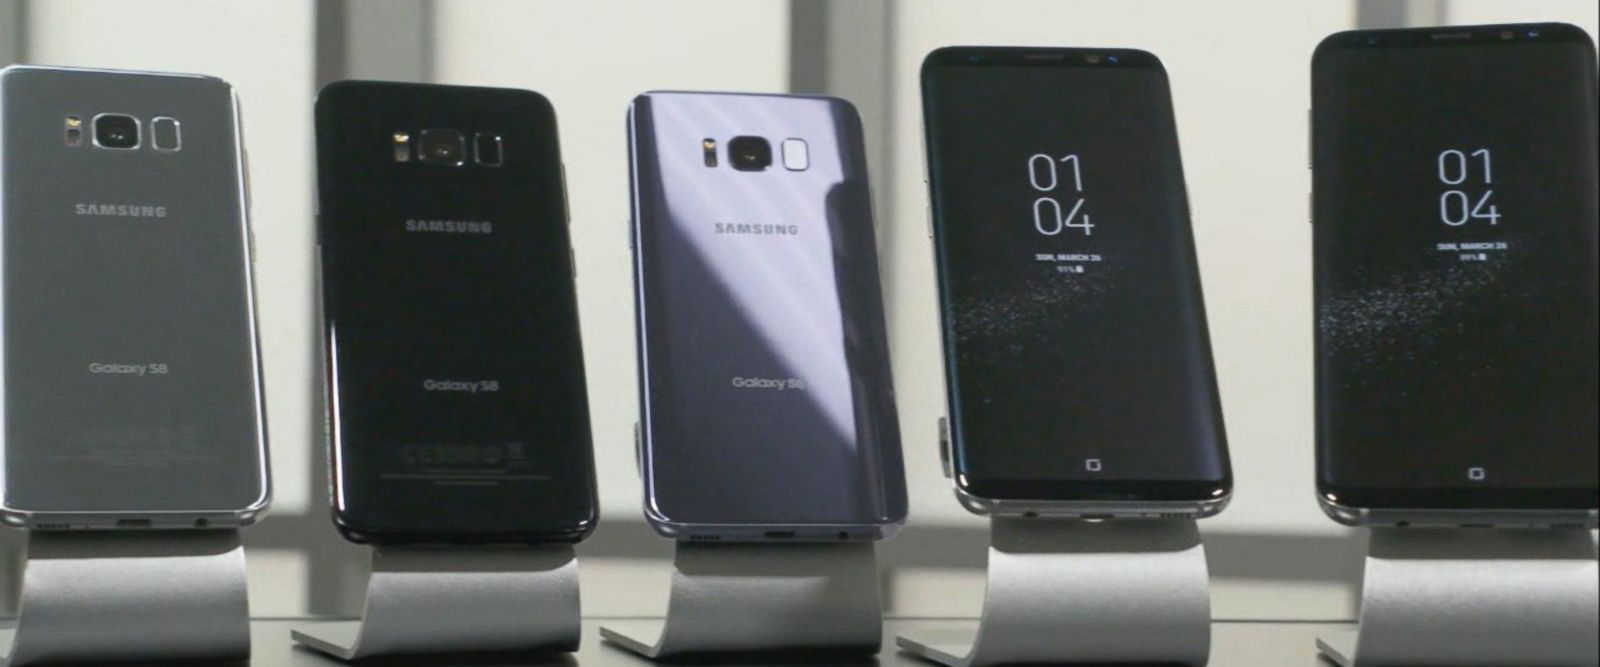 VIDEO: Possible sneak peek coming for Samsung's new smartphones